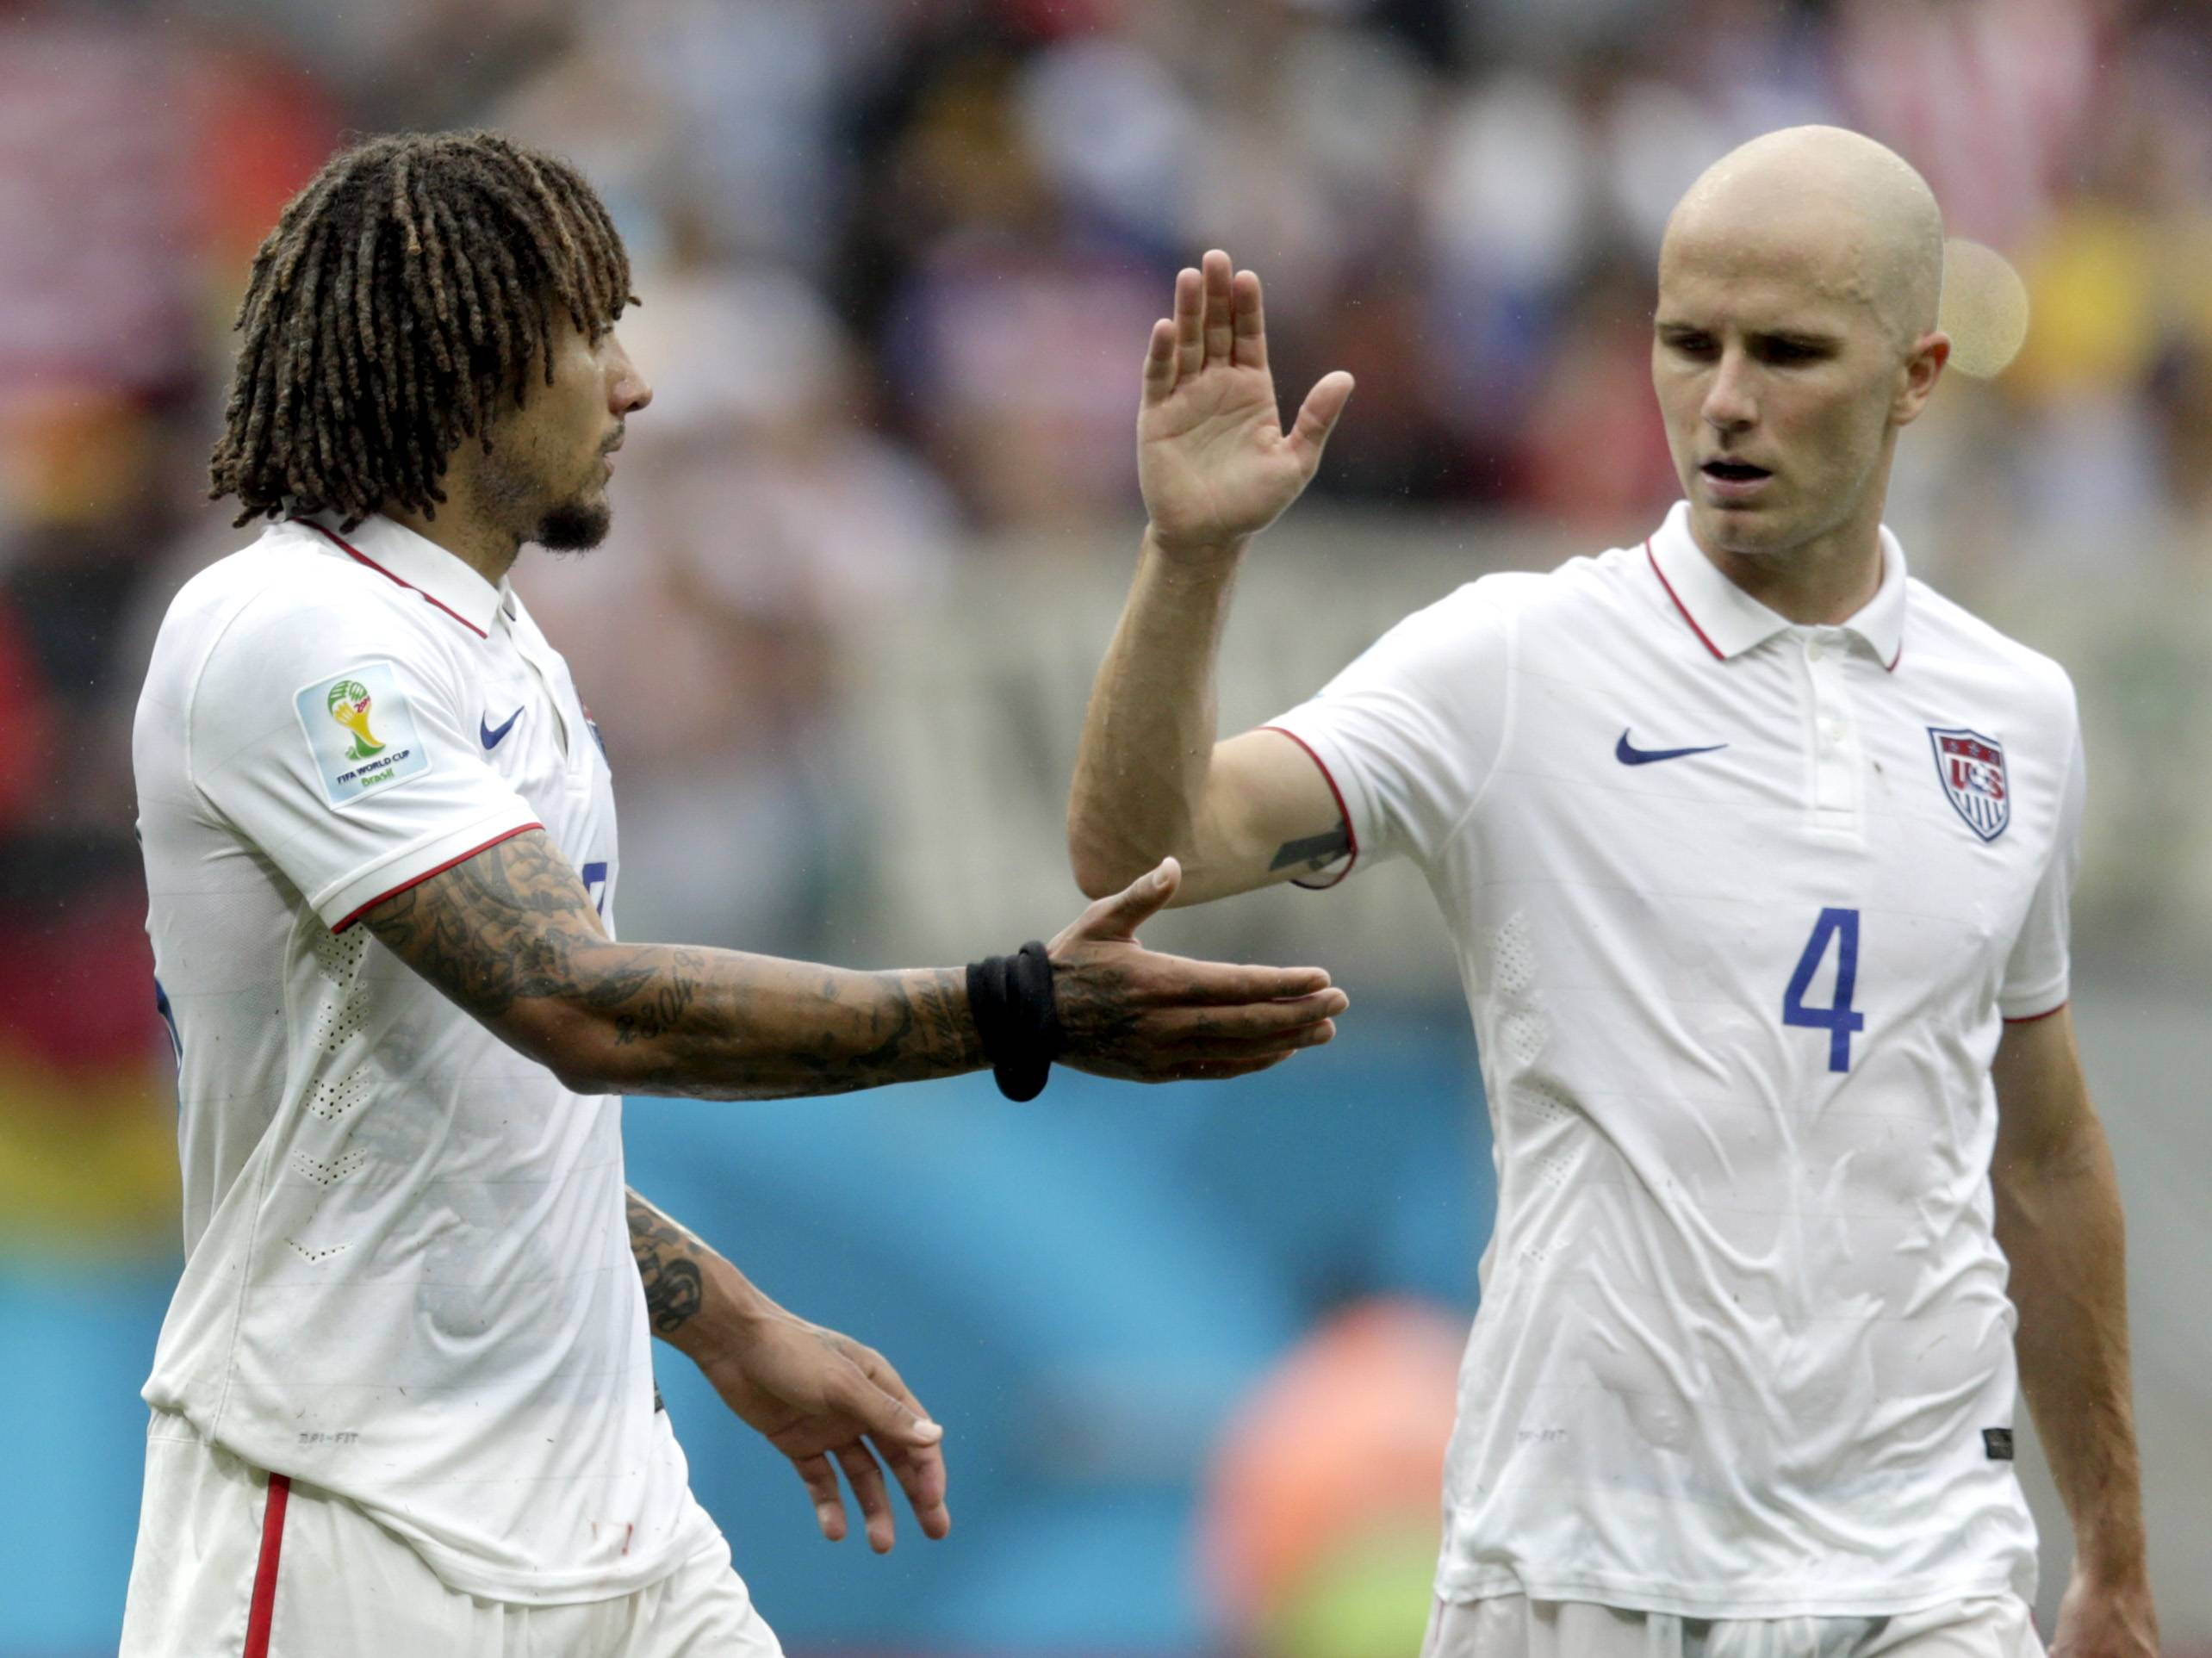 While the Fire may lose its bid to land World Cup player Jermaine Jones, at left with USA teammate Michael Bradley, the team is close to signing an Argentine forward, sources tell the Daily Herald.